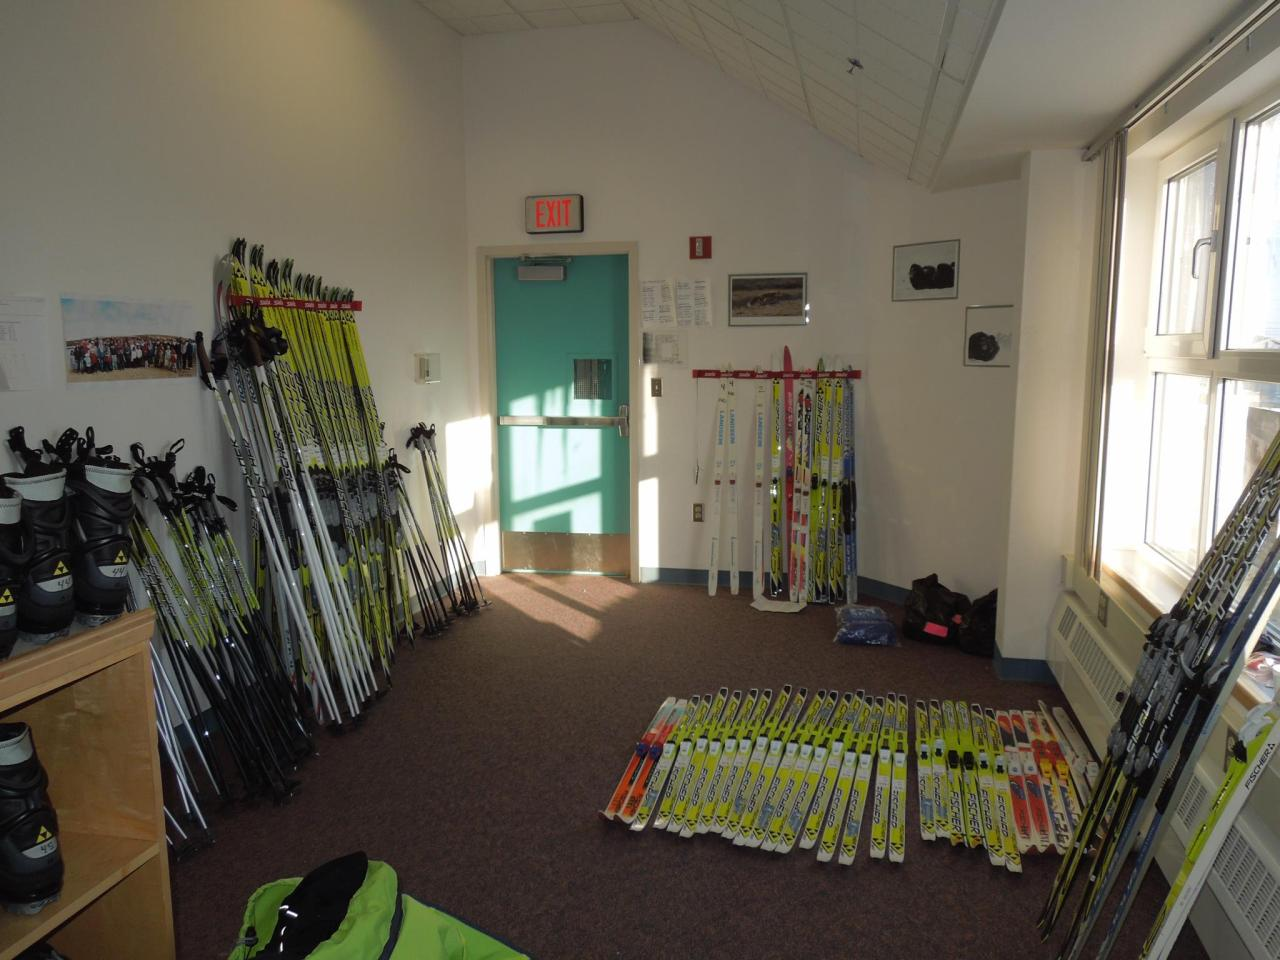 The ski room!  We brought 50 sets of skis, boots, and poles.  A bunch of the skis were left behind for the kids to use throughout the coming year.